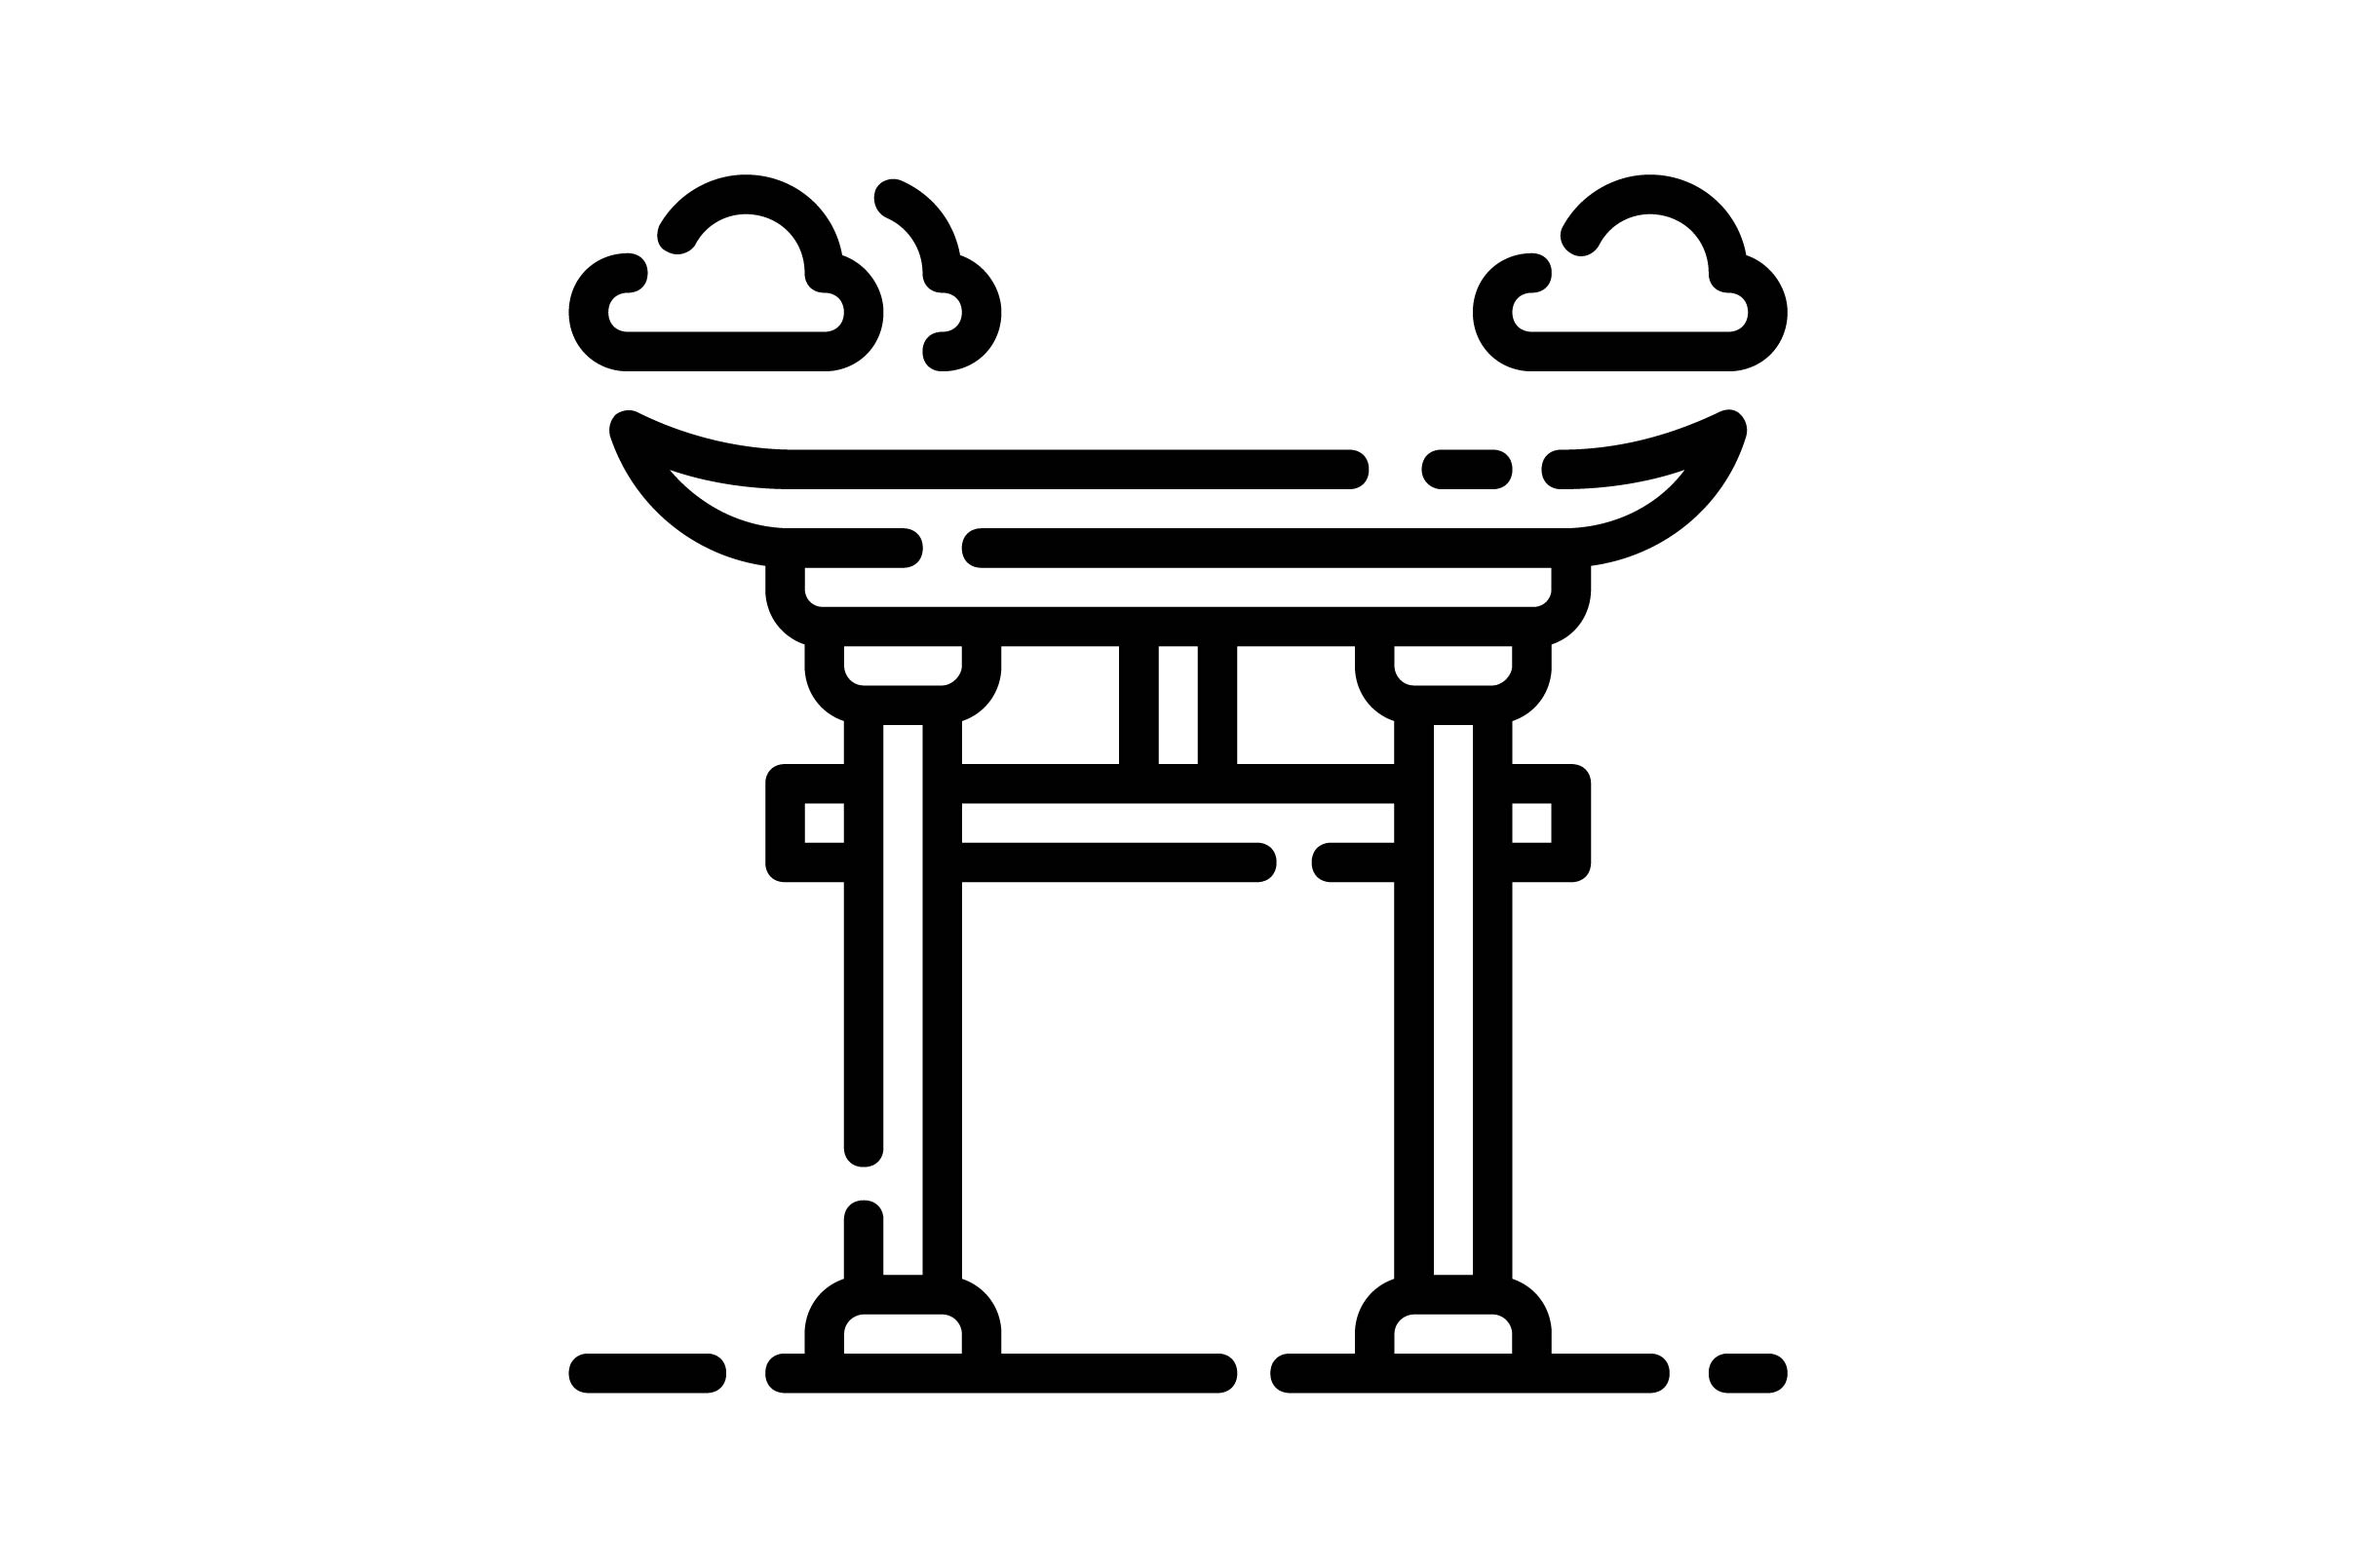 Download Free Torii Graphic By Khld939 Creative Fabrica for Cricut Explore, Silhouette and other cutting machines.